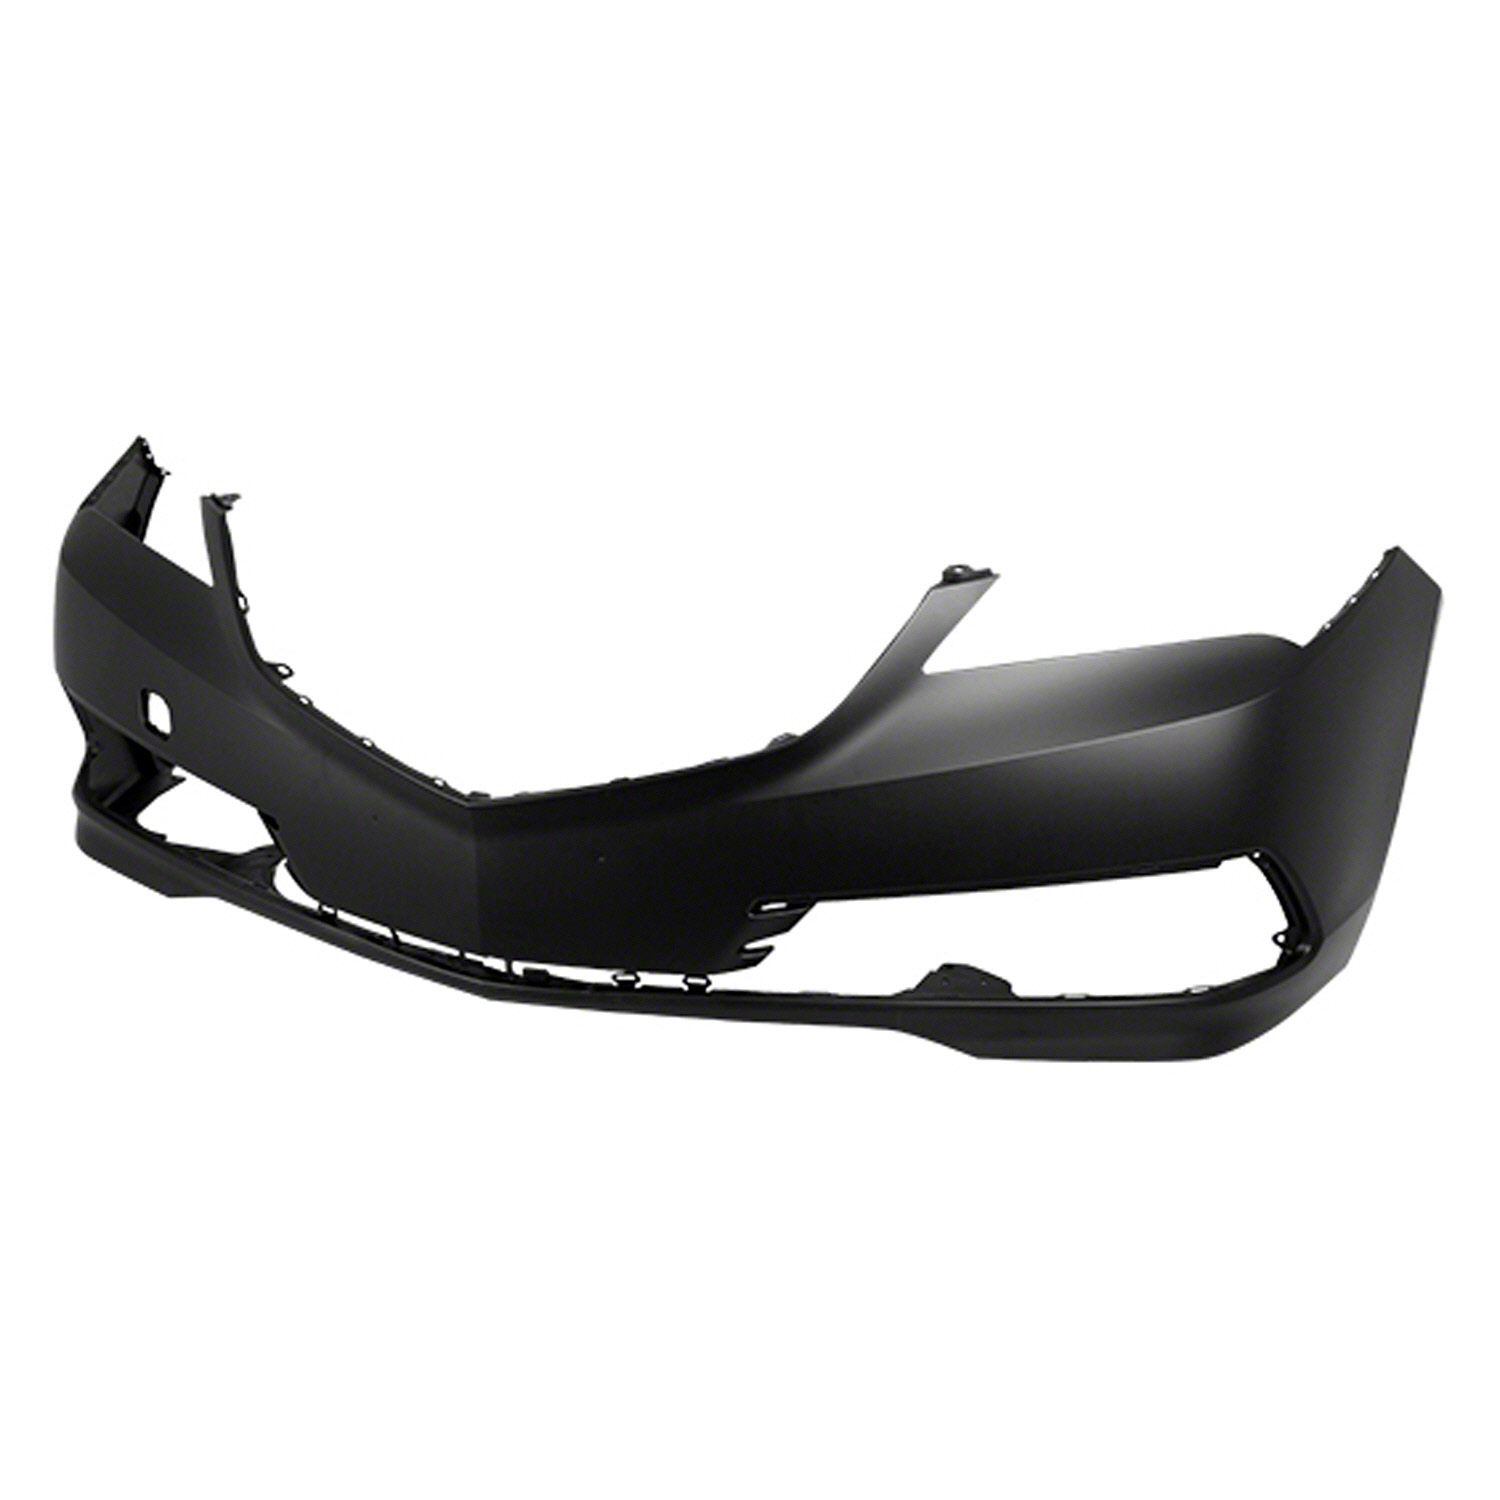 Fits 2015-2017 Acura TLX Front Bumper Cover 101-59956A